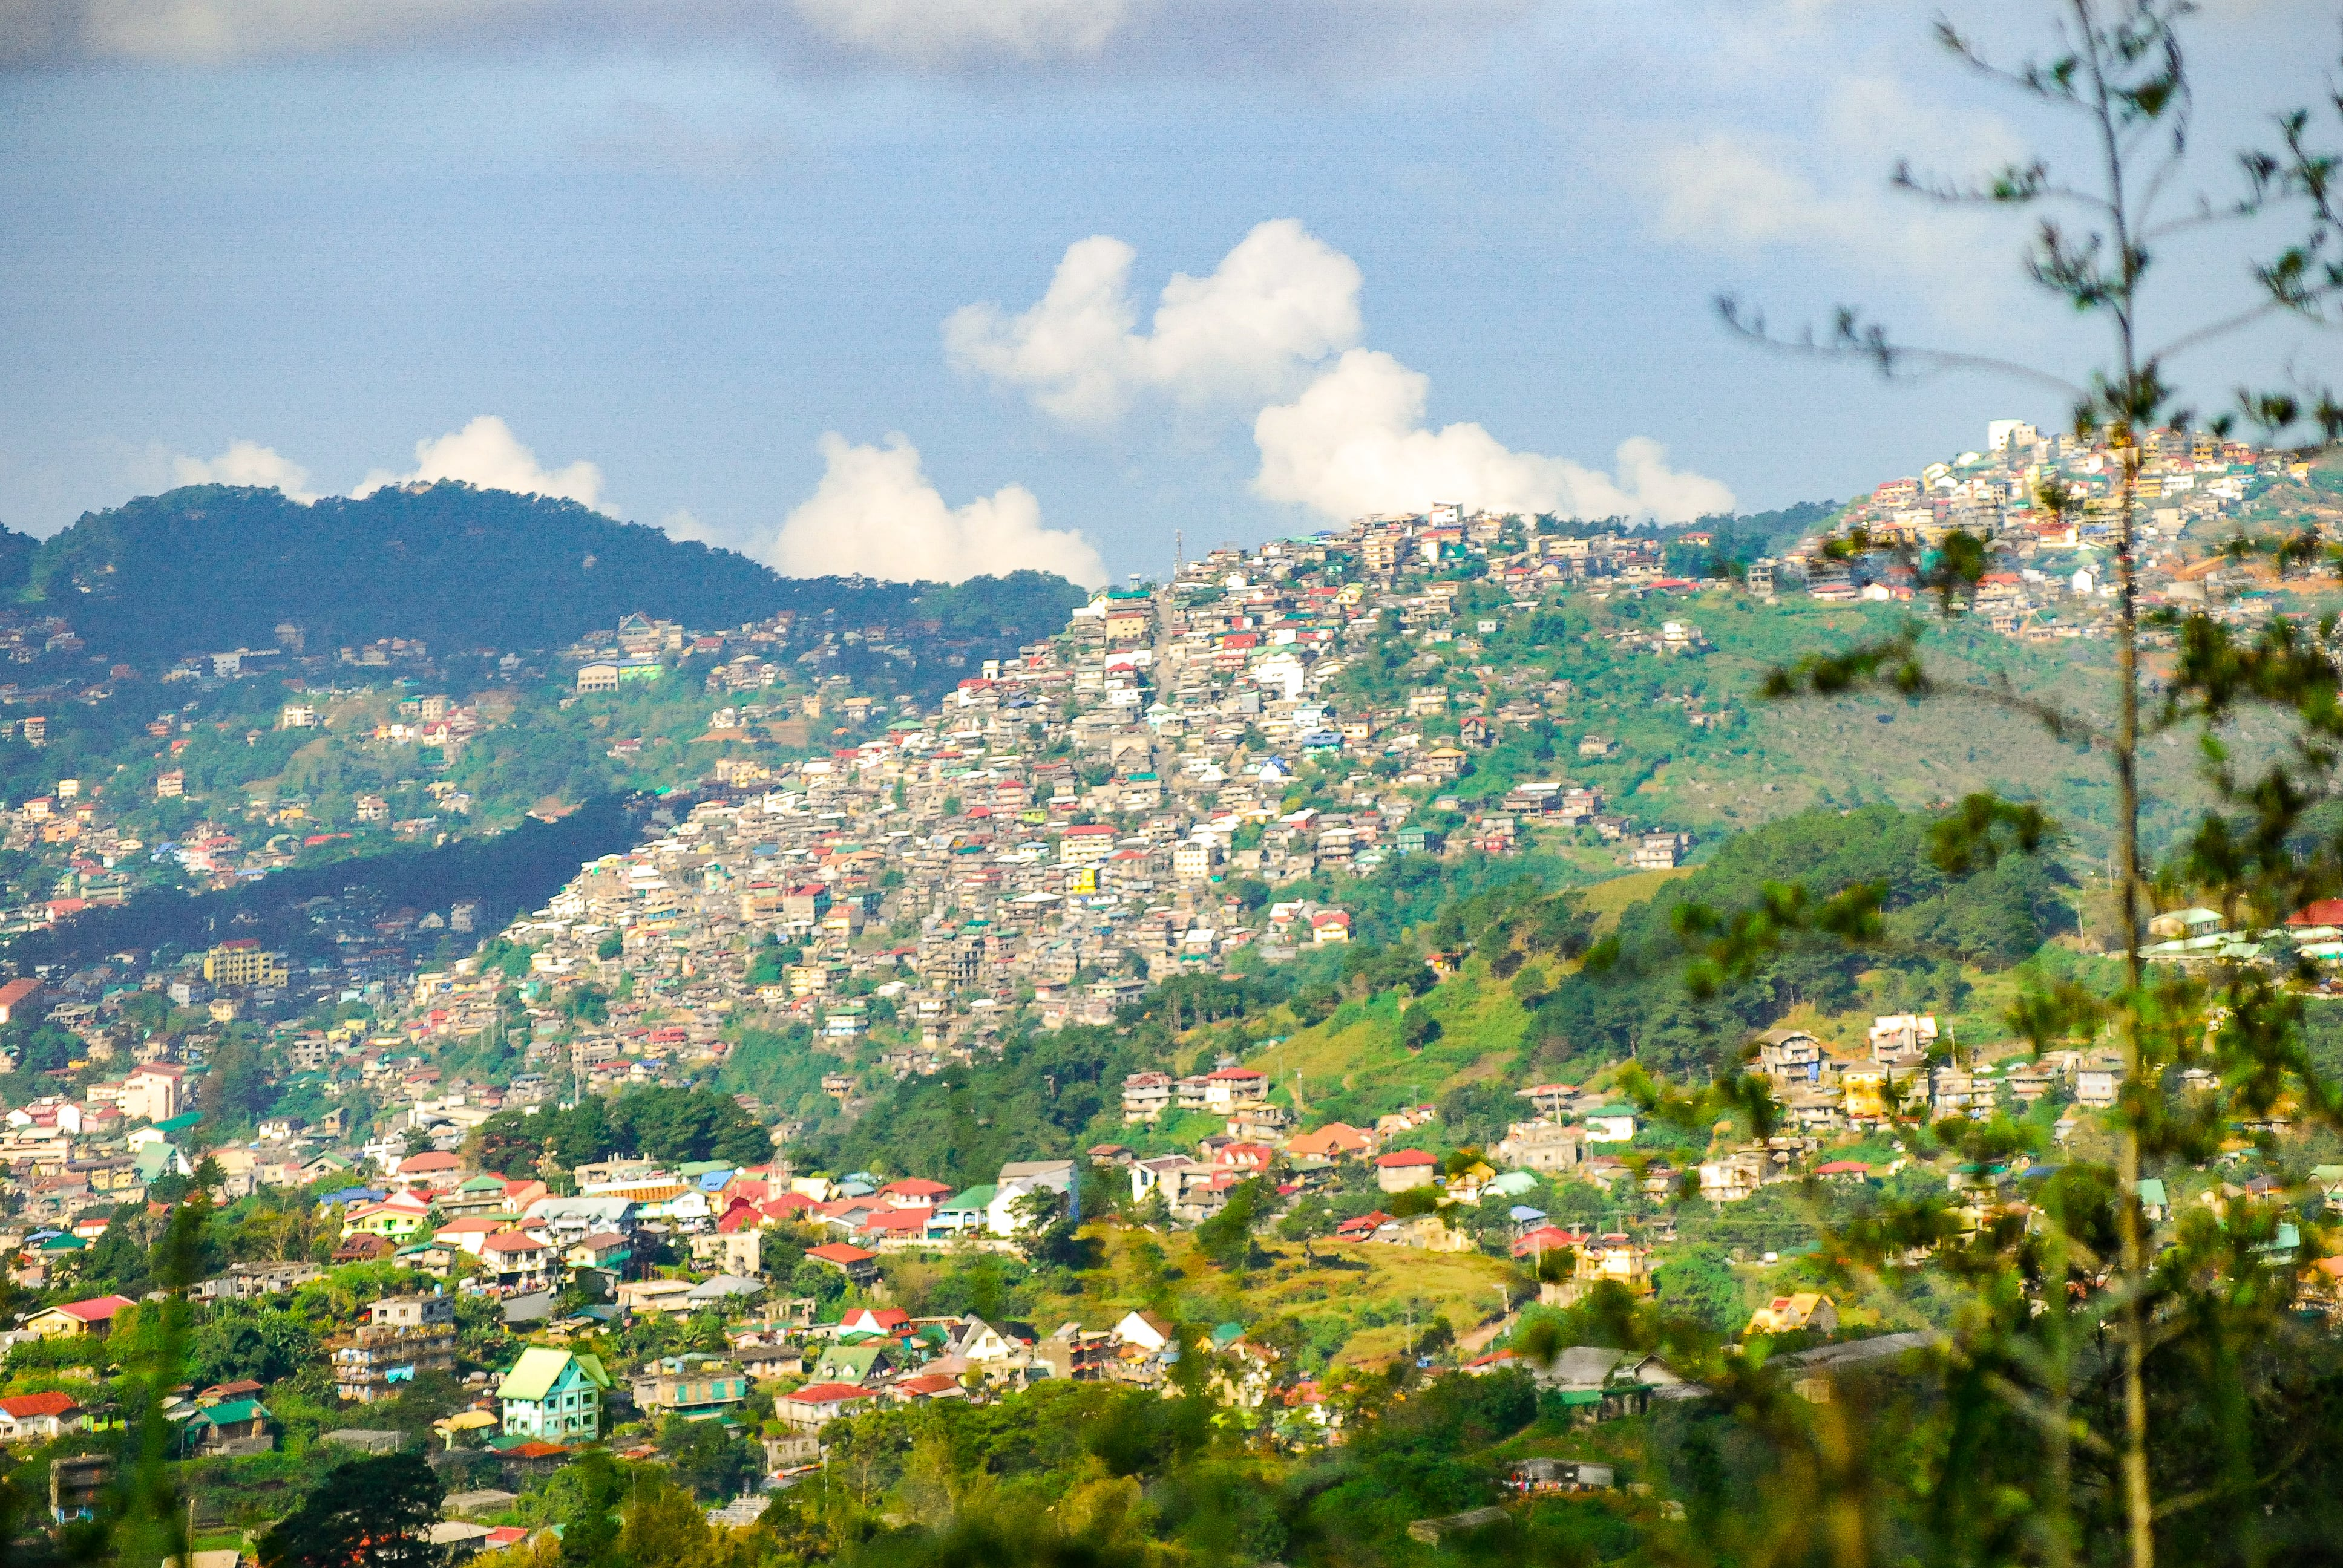 Mines view Park in Baguio City